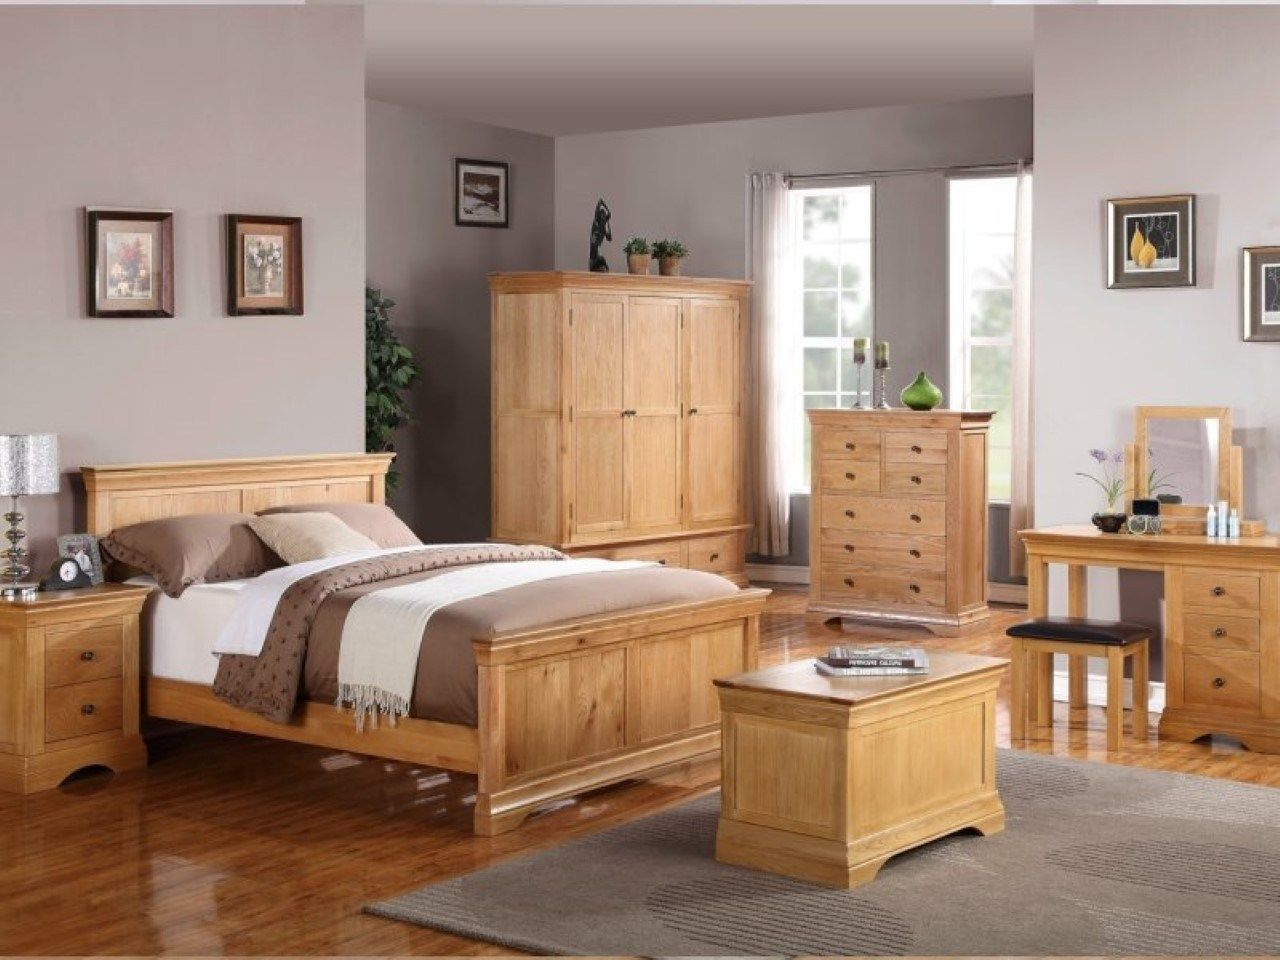 30 Best Photo Of Light Bedroom Furniture Janicereyesphotography Com Oak Bedroom Furniture Oak Bedroom Furniture Sets Cheap Bedroom Furniture